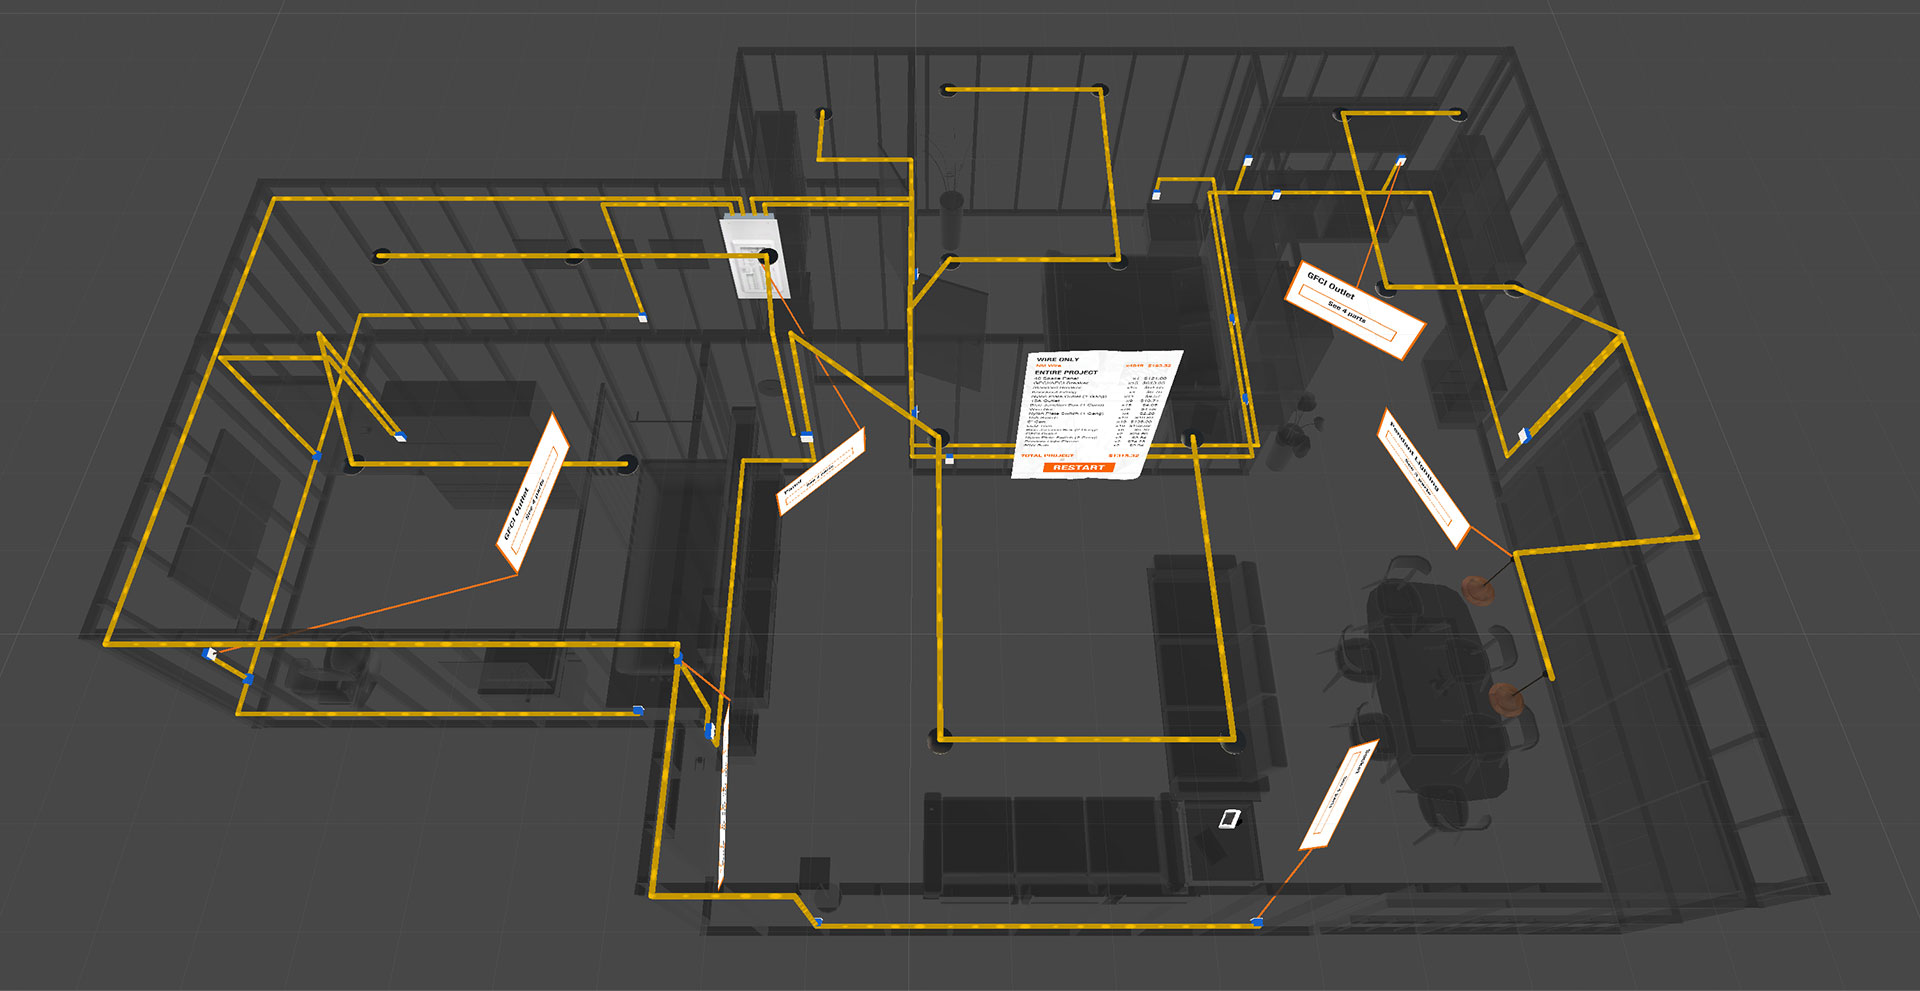 Bird's eye view, X-ray style image of wiring running throughout the entirety a residential space.